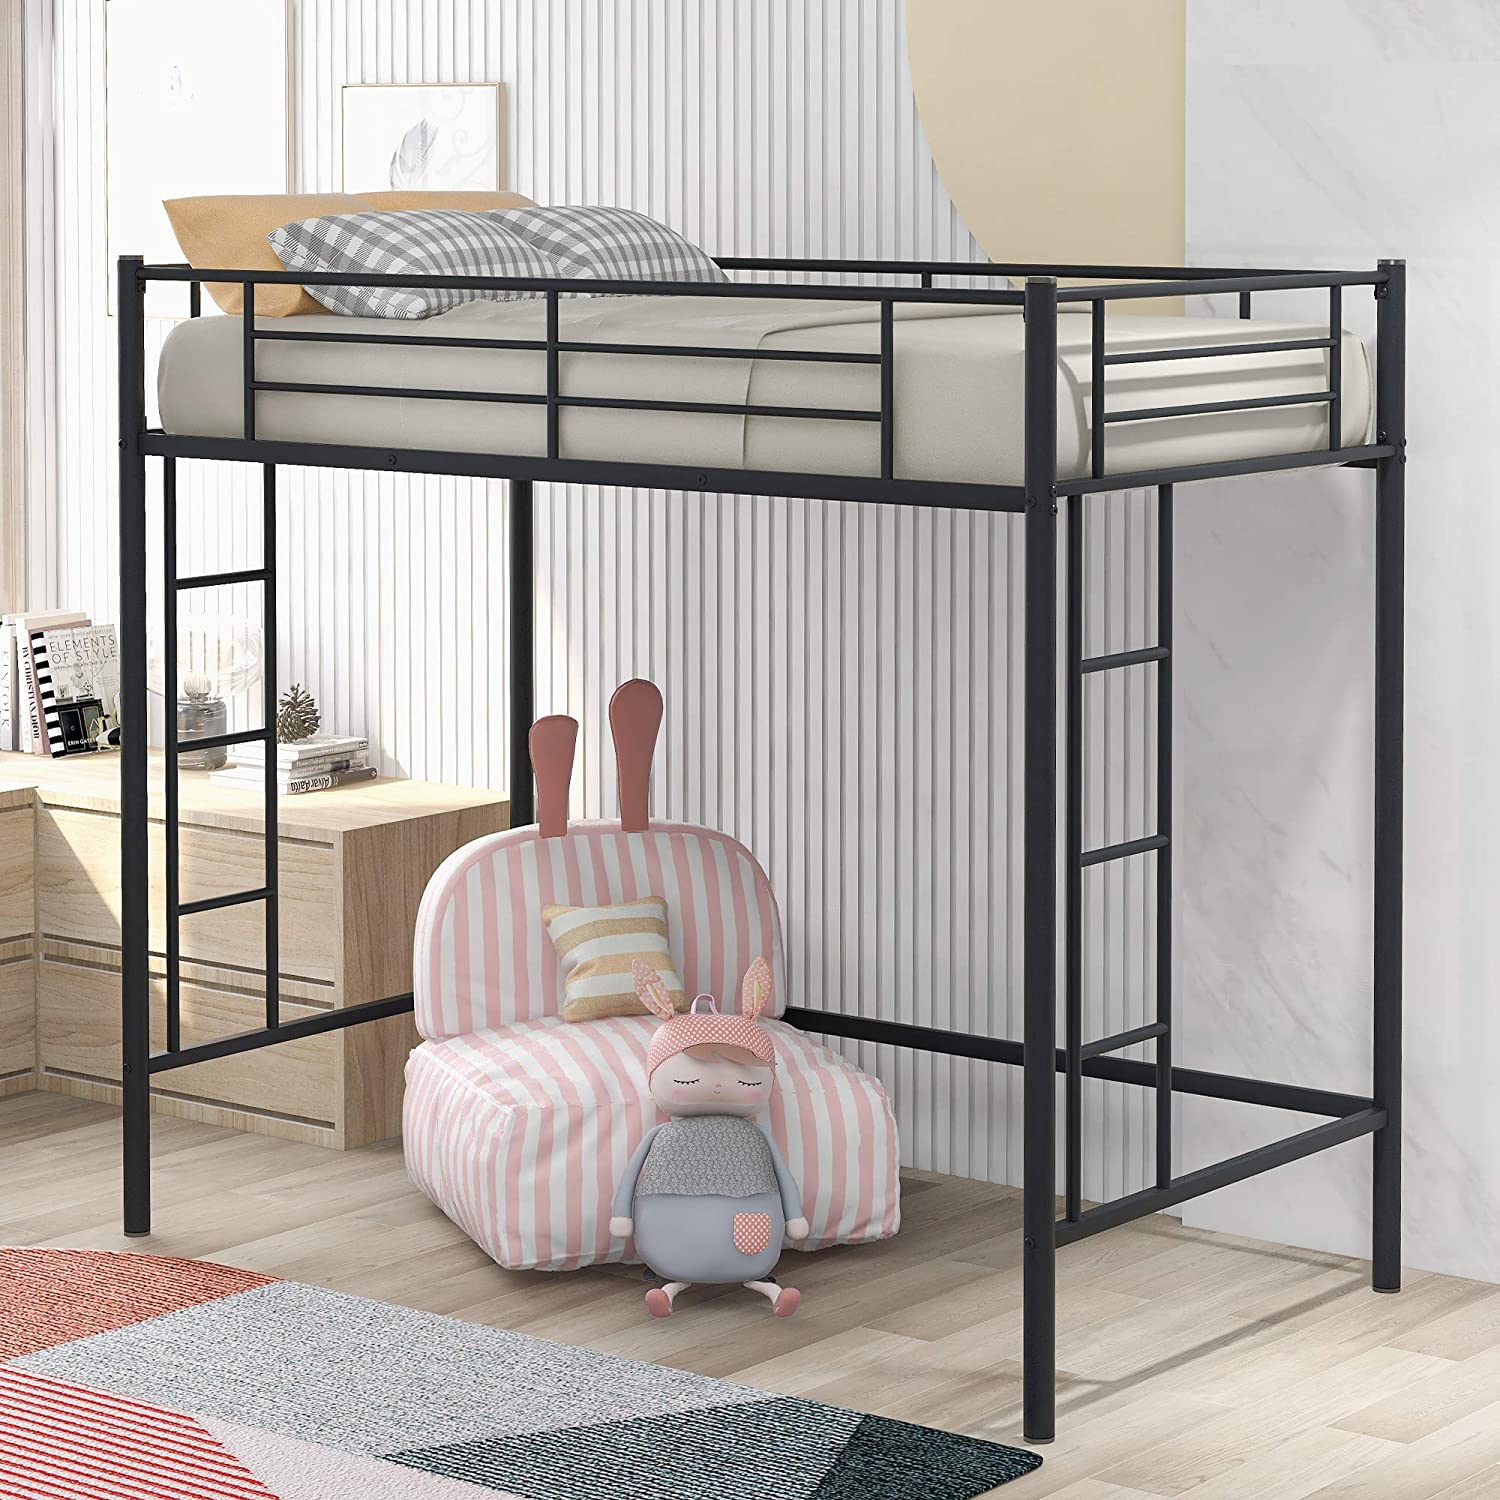 Twin Loft Bed Frame with 2 Ladders, High Metal Loft Bed for Kids, 220 lbs Weight Limits, Twin Size, Black